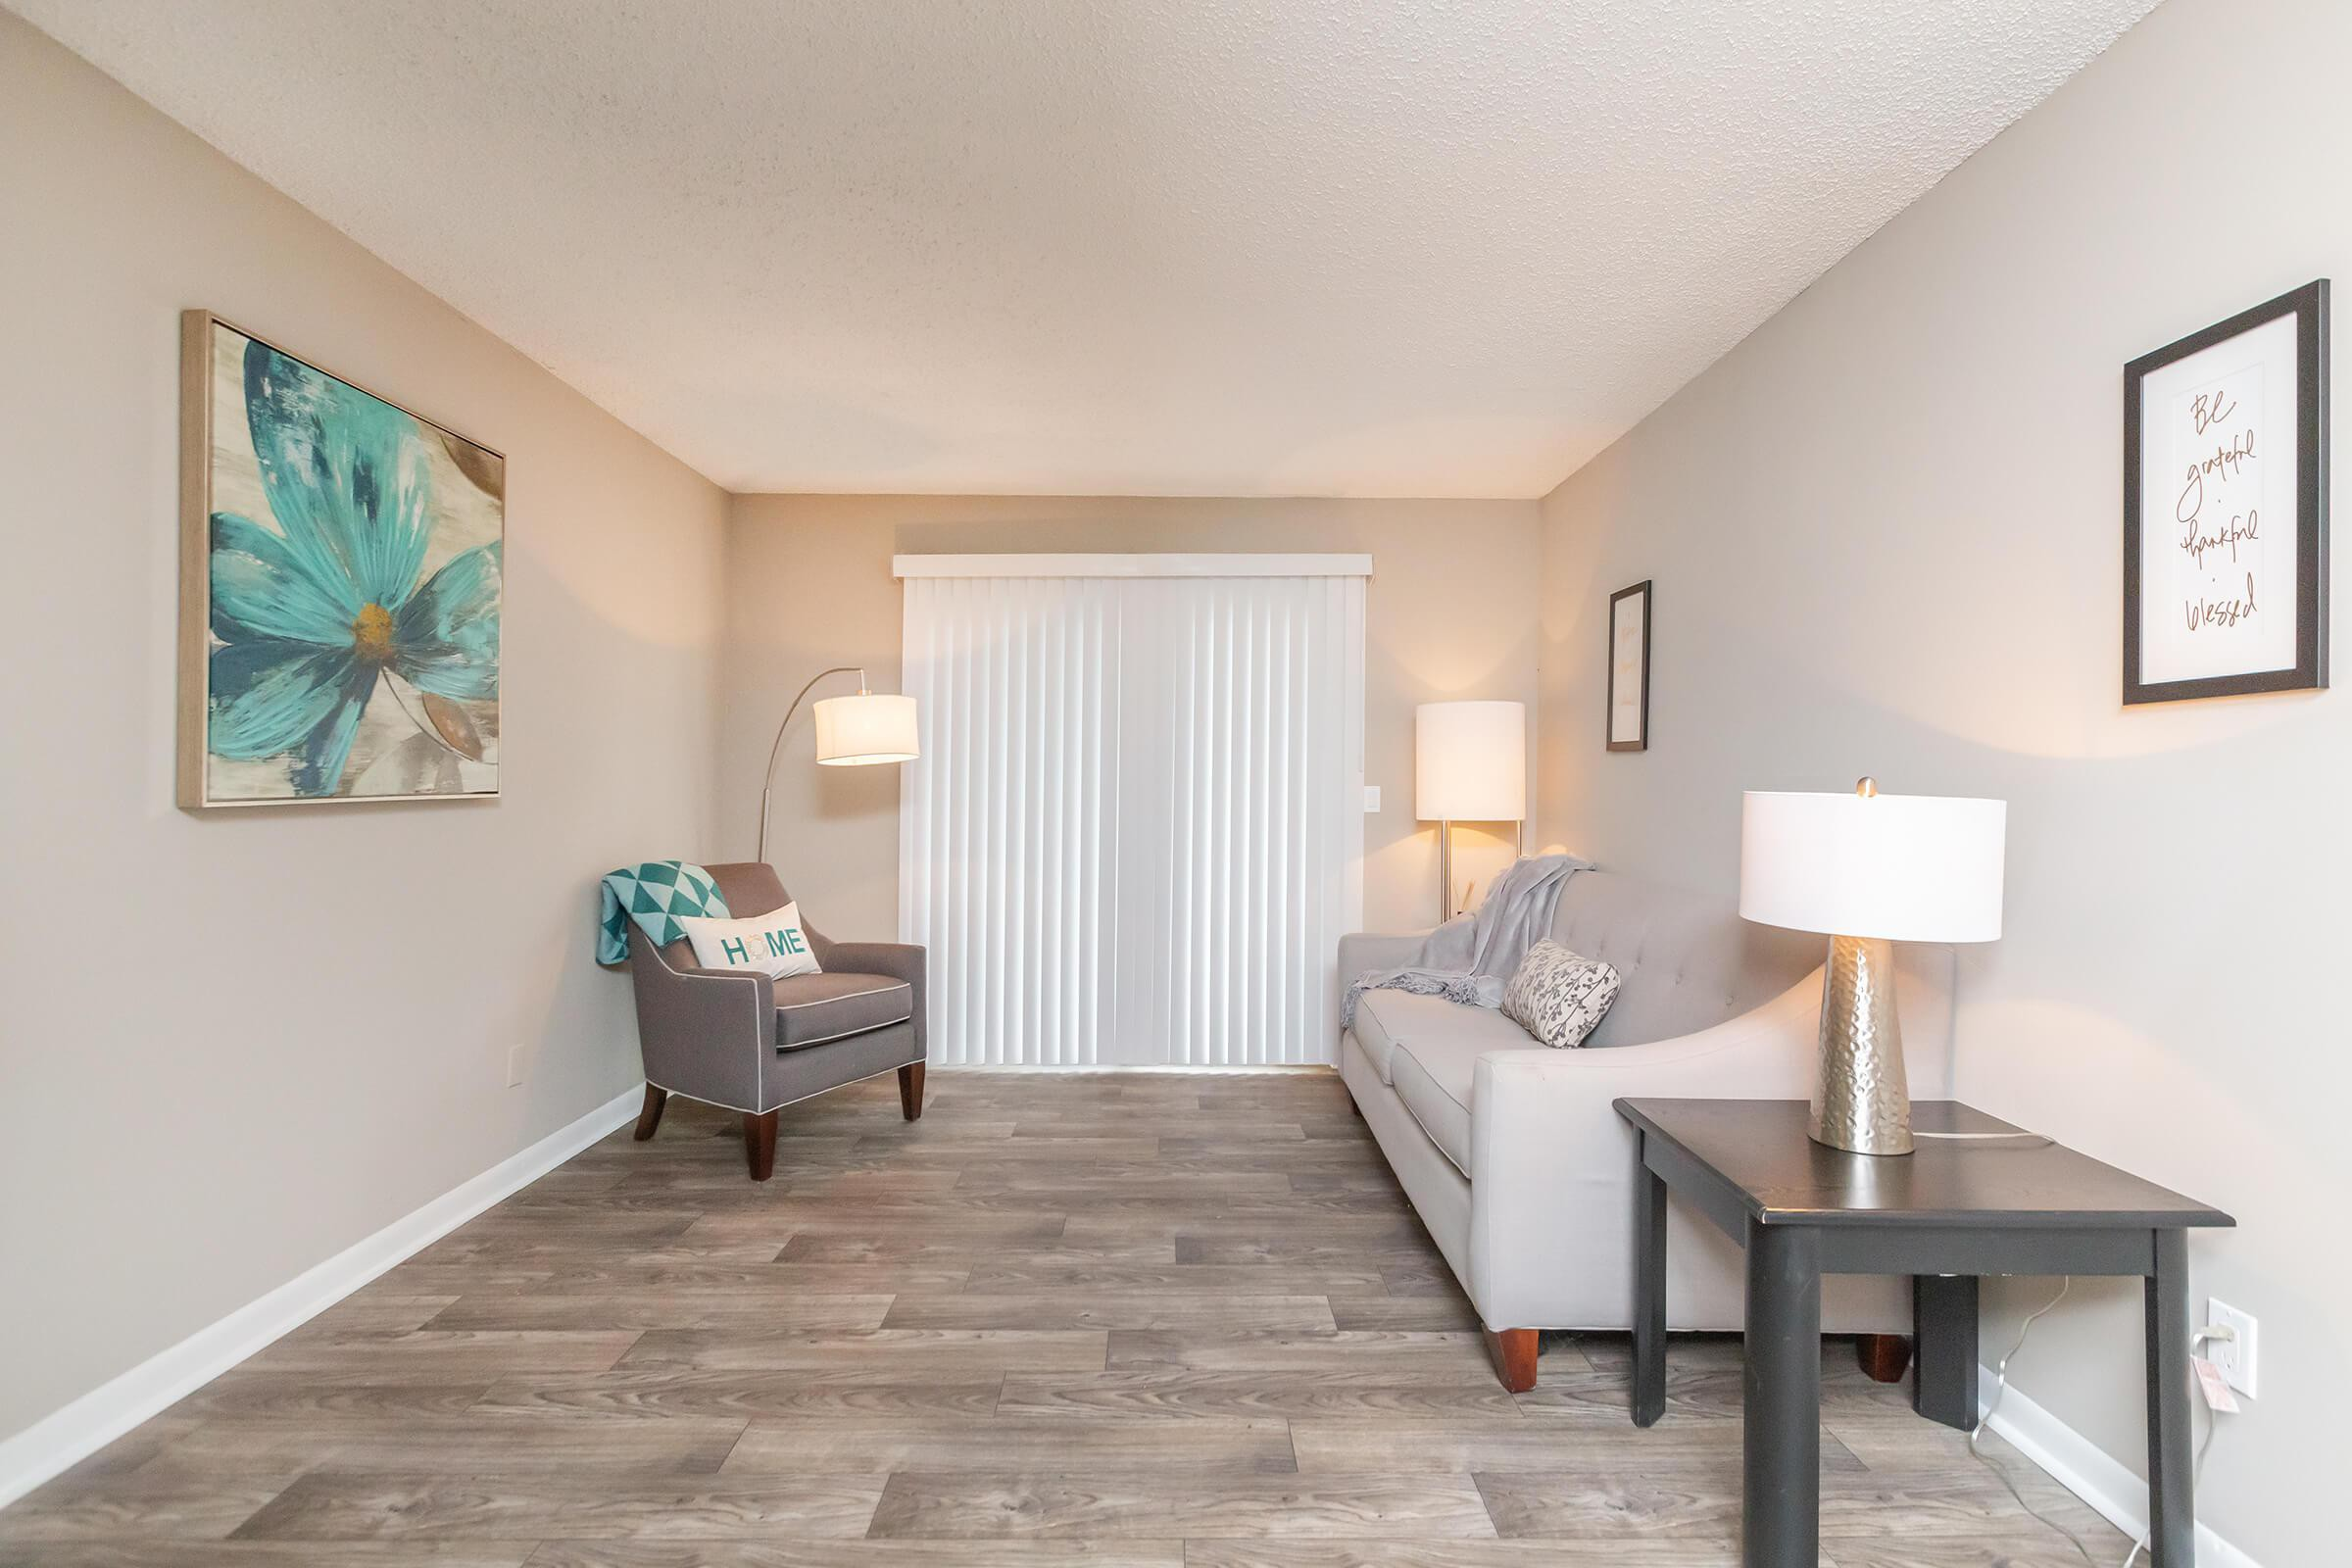 Apartments Near Lipscomb Sussex Downs for Lipscomb University Students in Nashville, TN